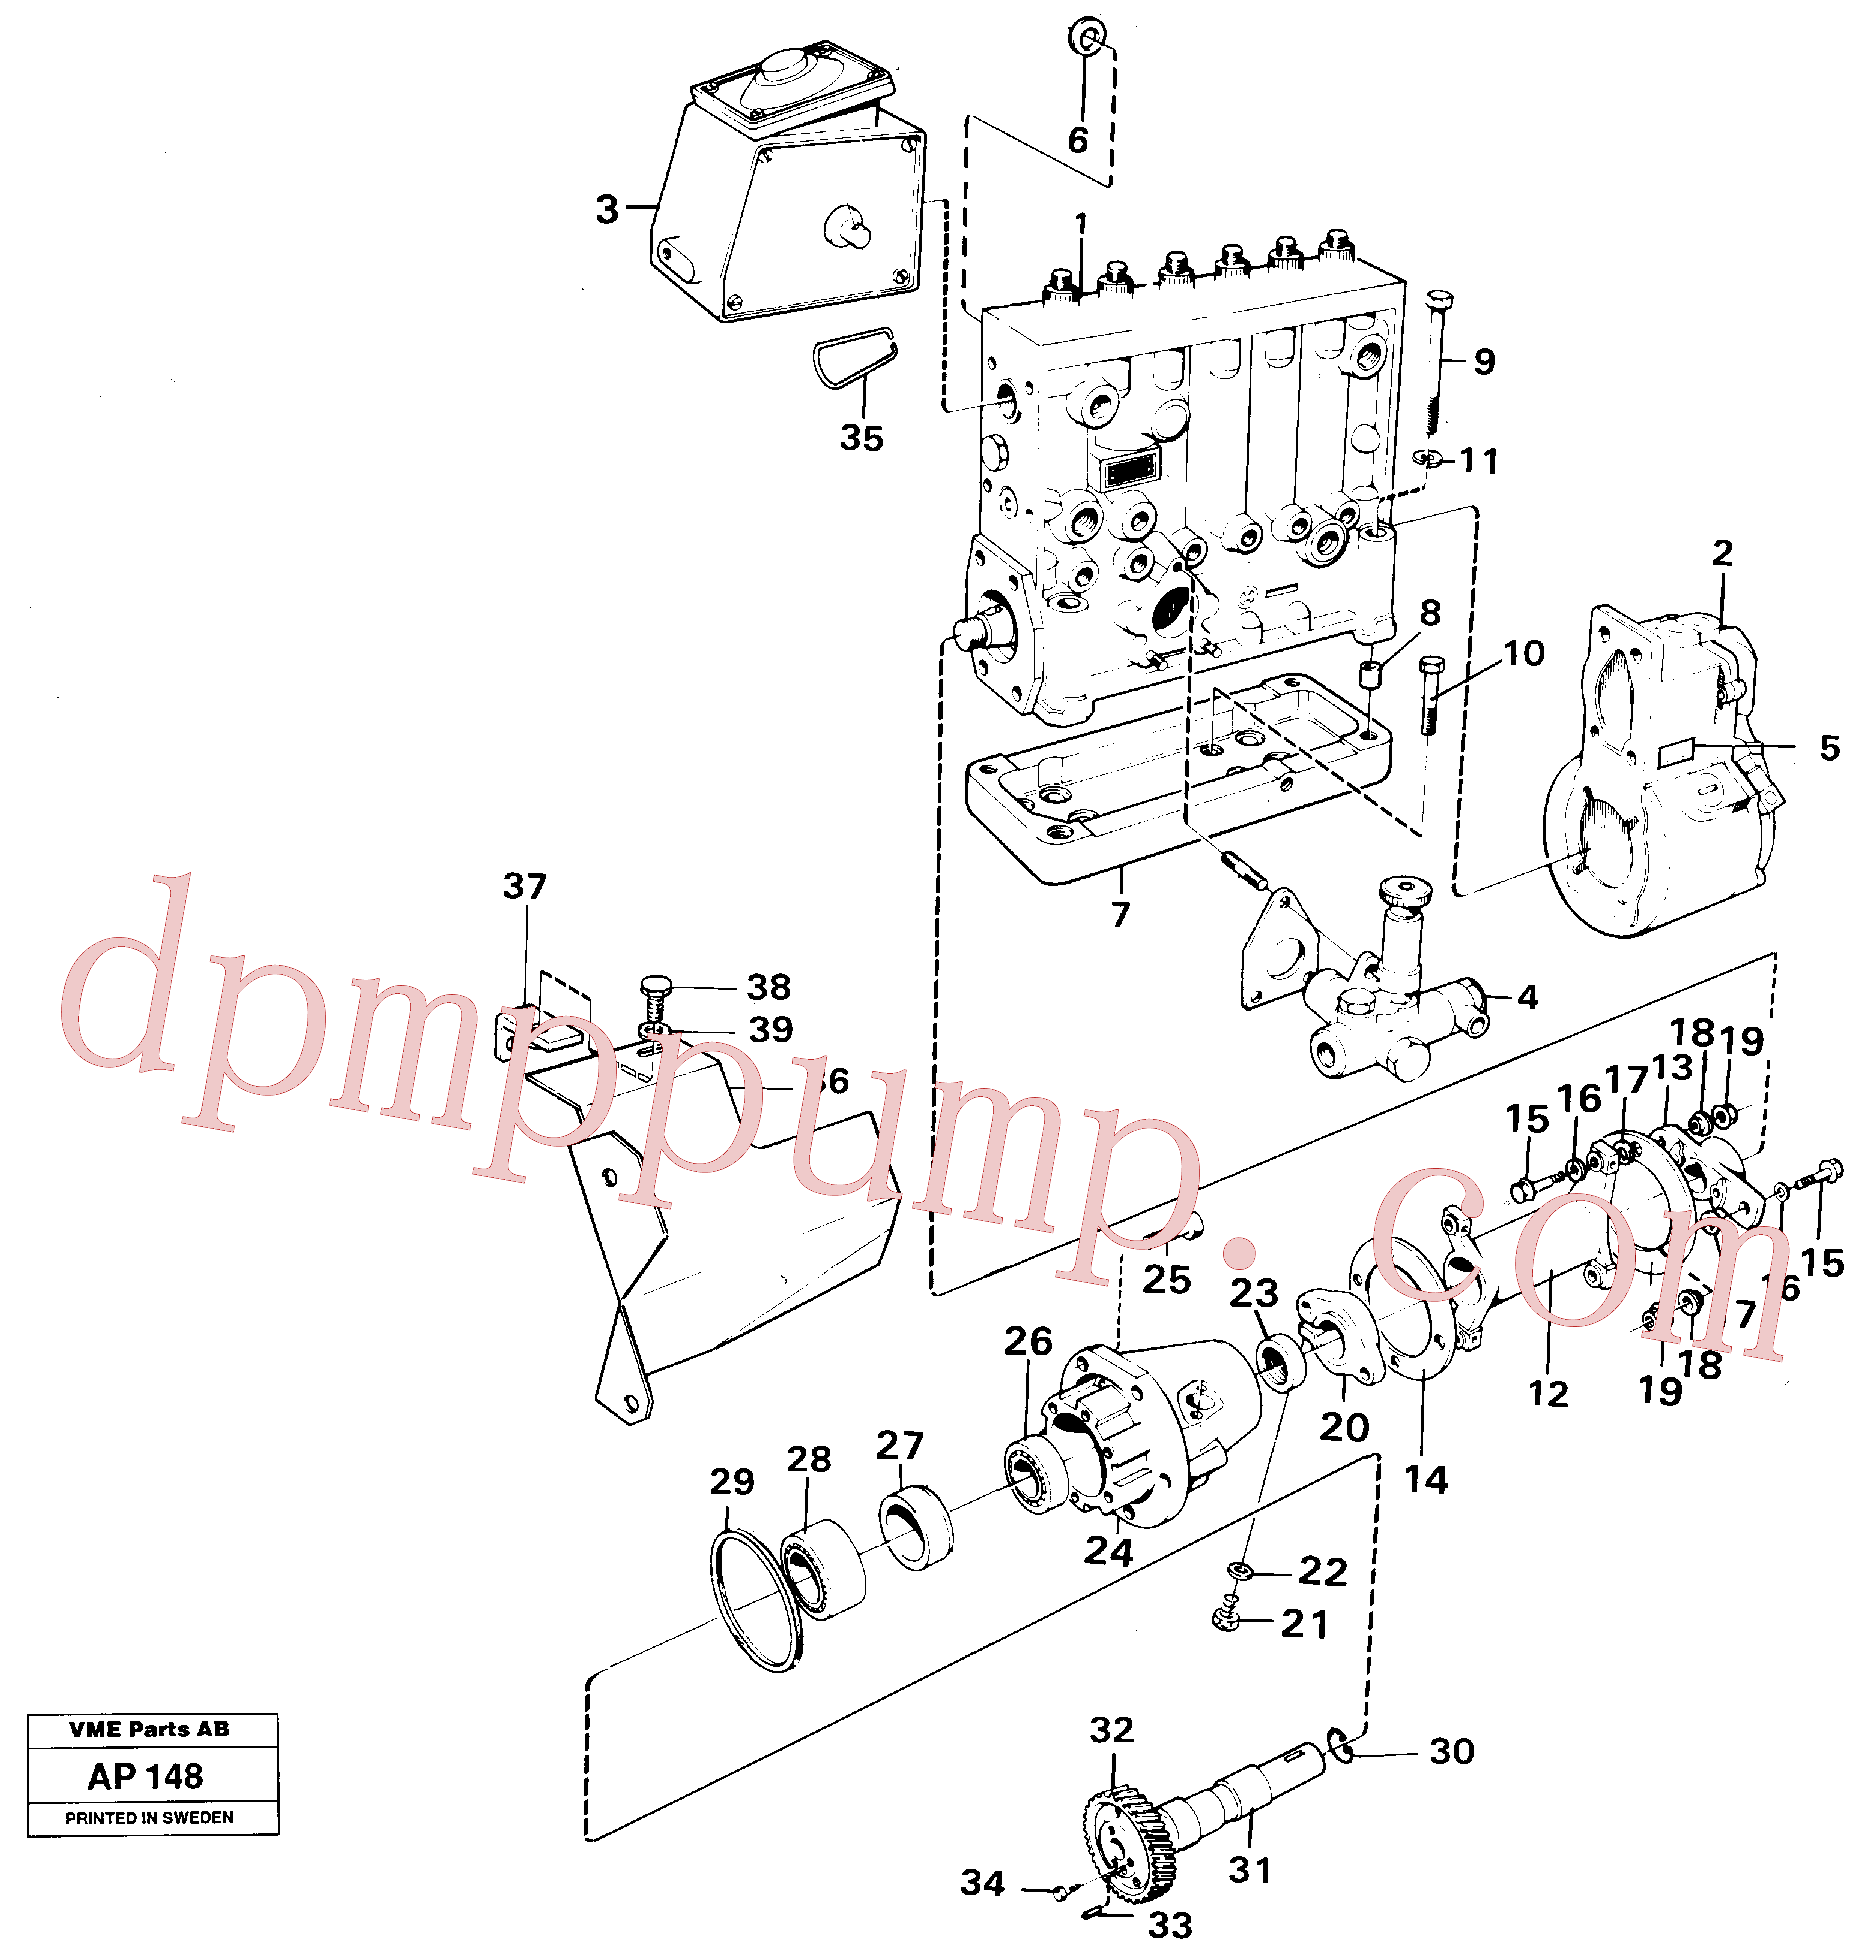 VOE914540 for Volvo Injection pump with drive(AP148 assembly)